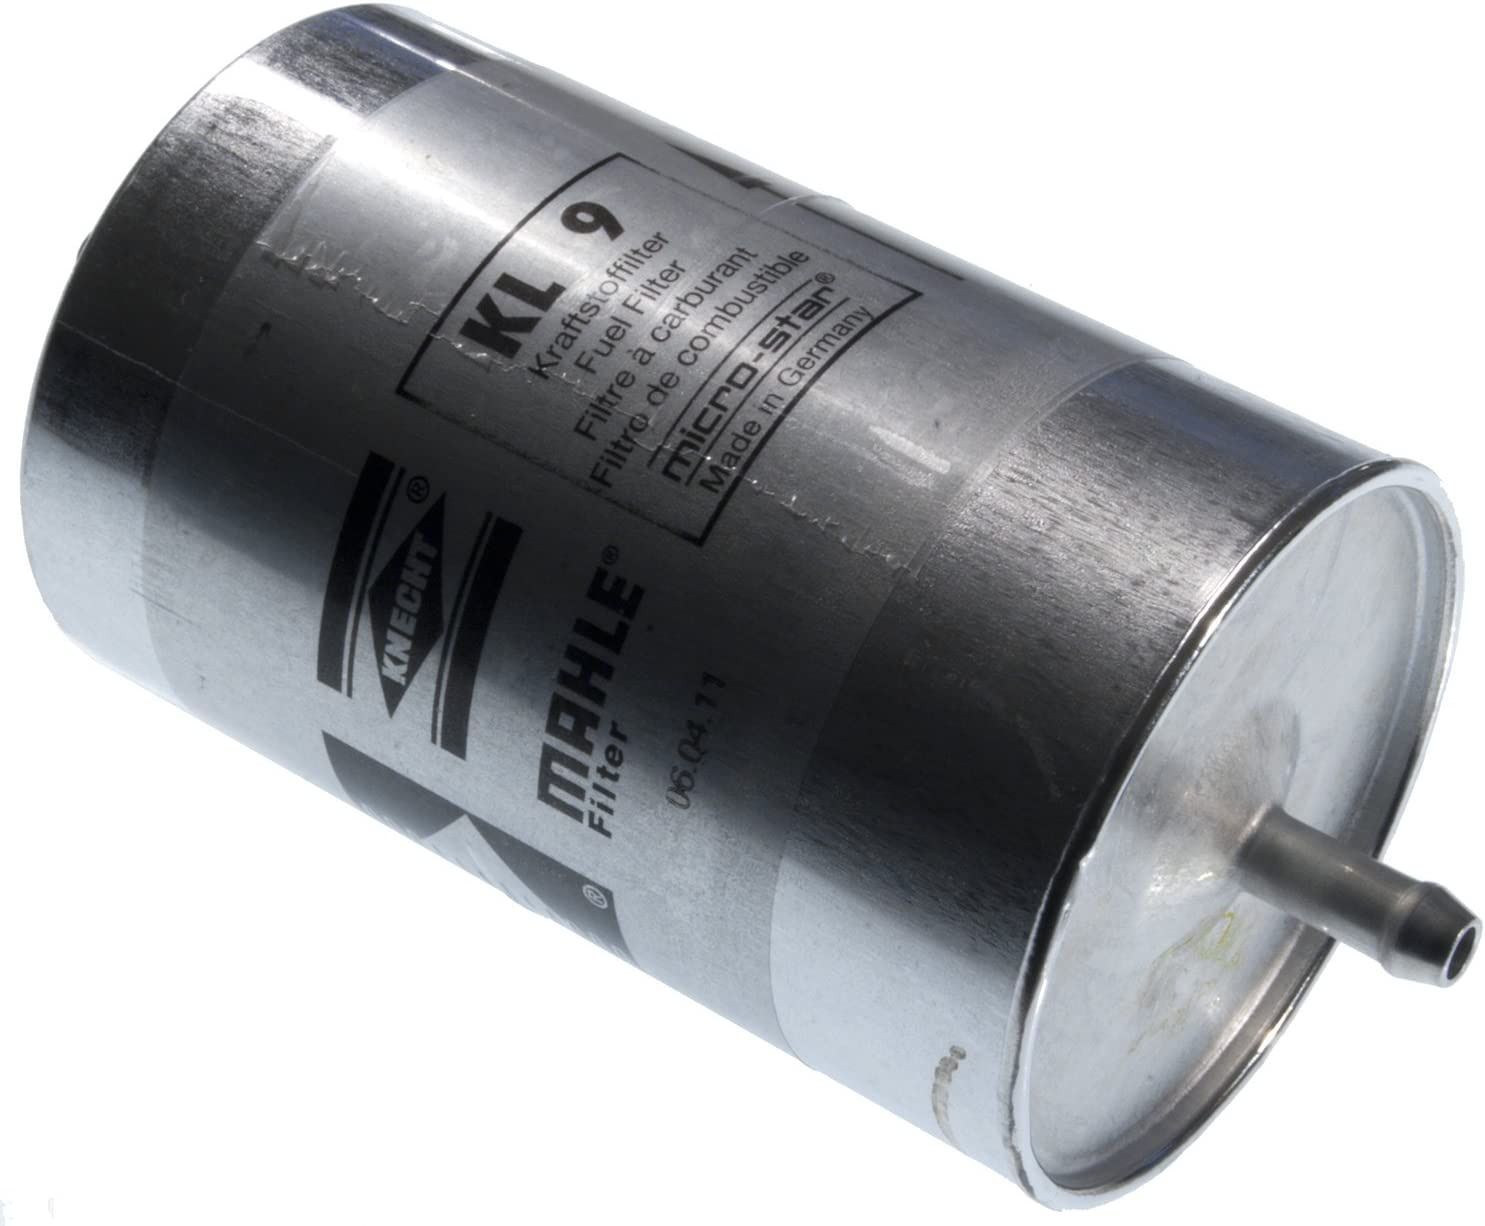 Amazon.com: MAHLE Original KL 9 Fuel Filter: AutomotiveAmazon.com